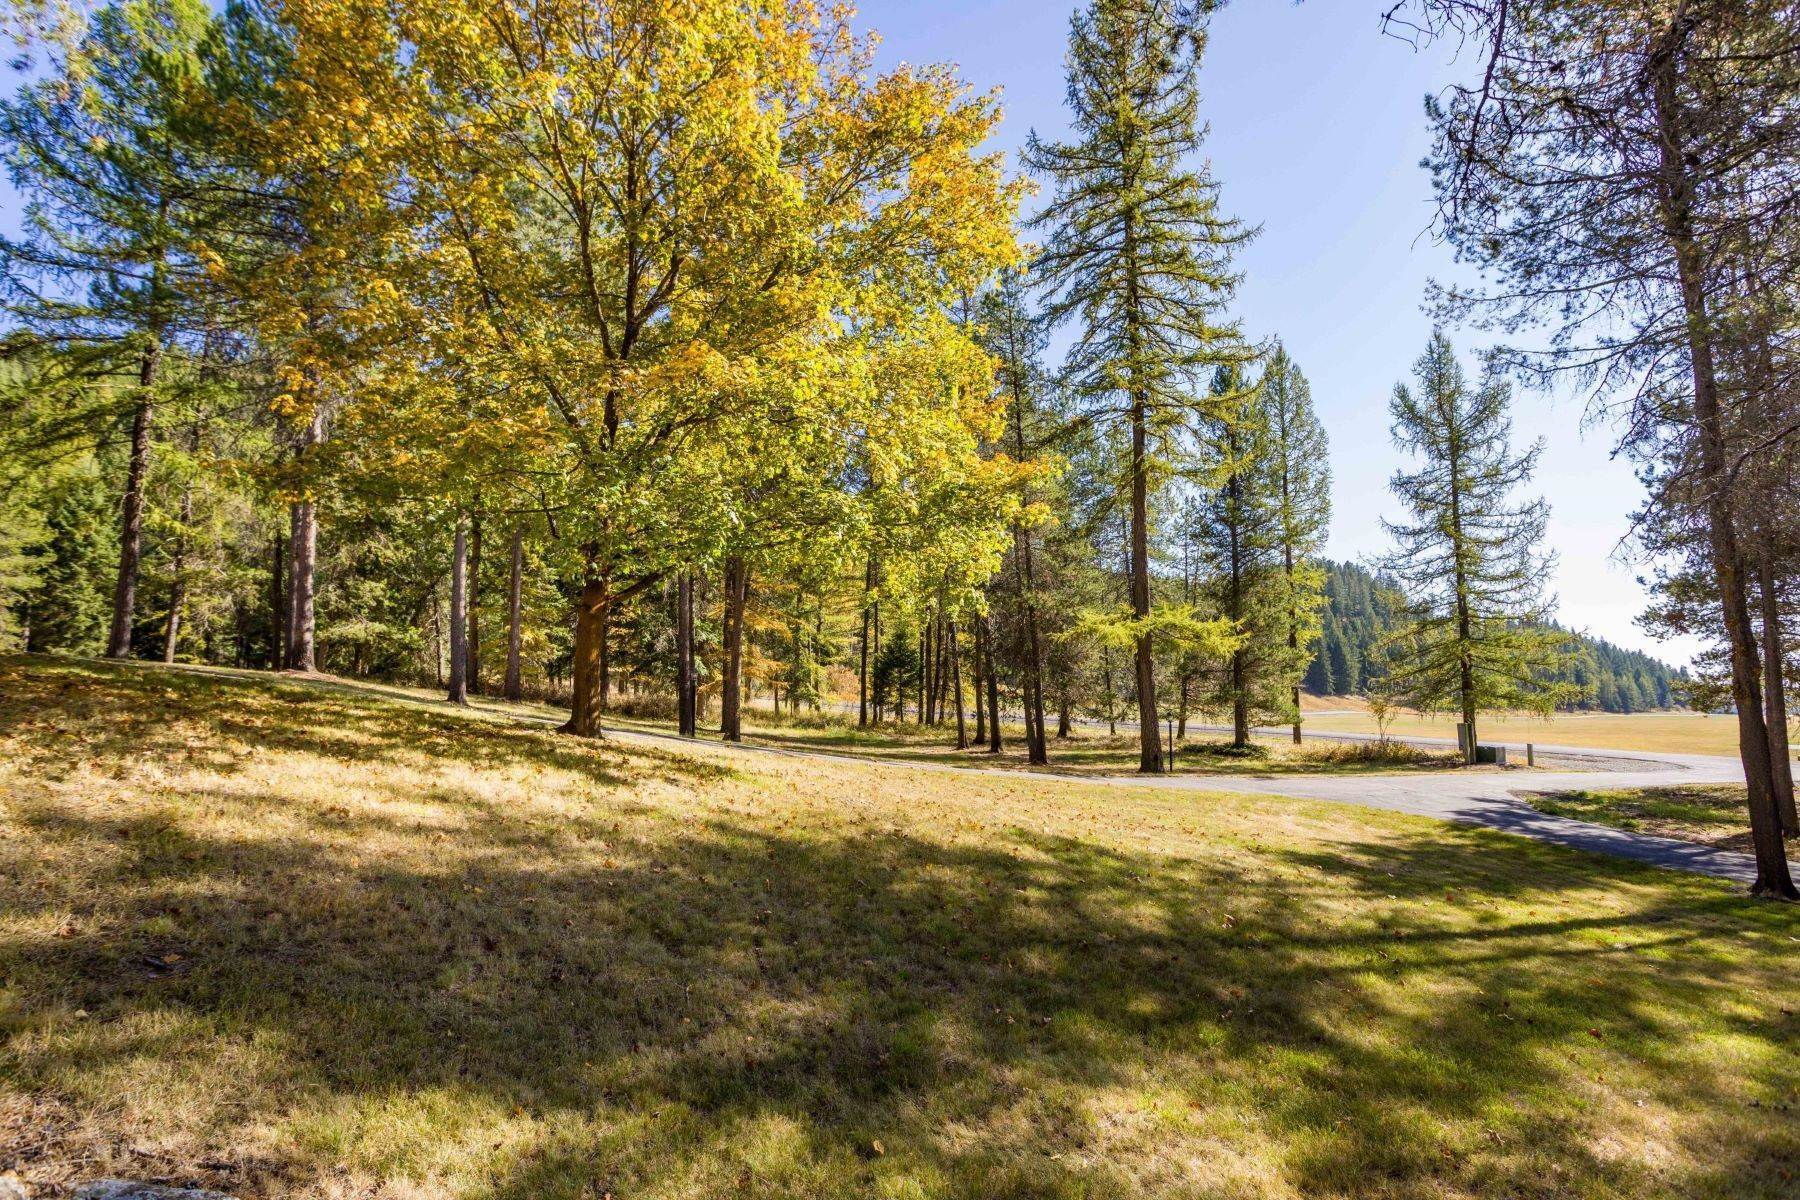 17. Land for Sale at Northwest Montana Forest, Meadows and Ponds 295 Garland Lane Whitefish, Montana 59937 United States